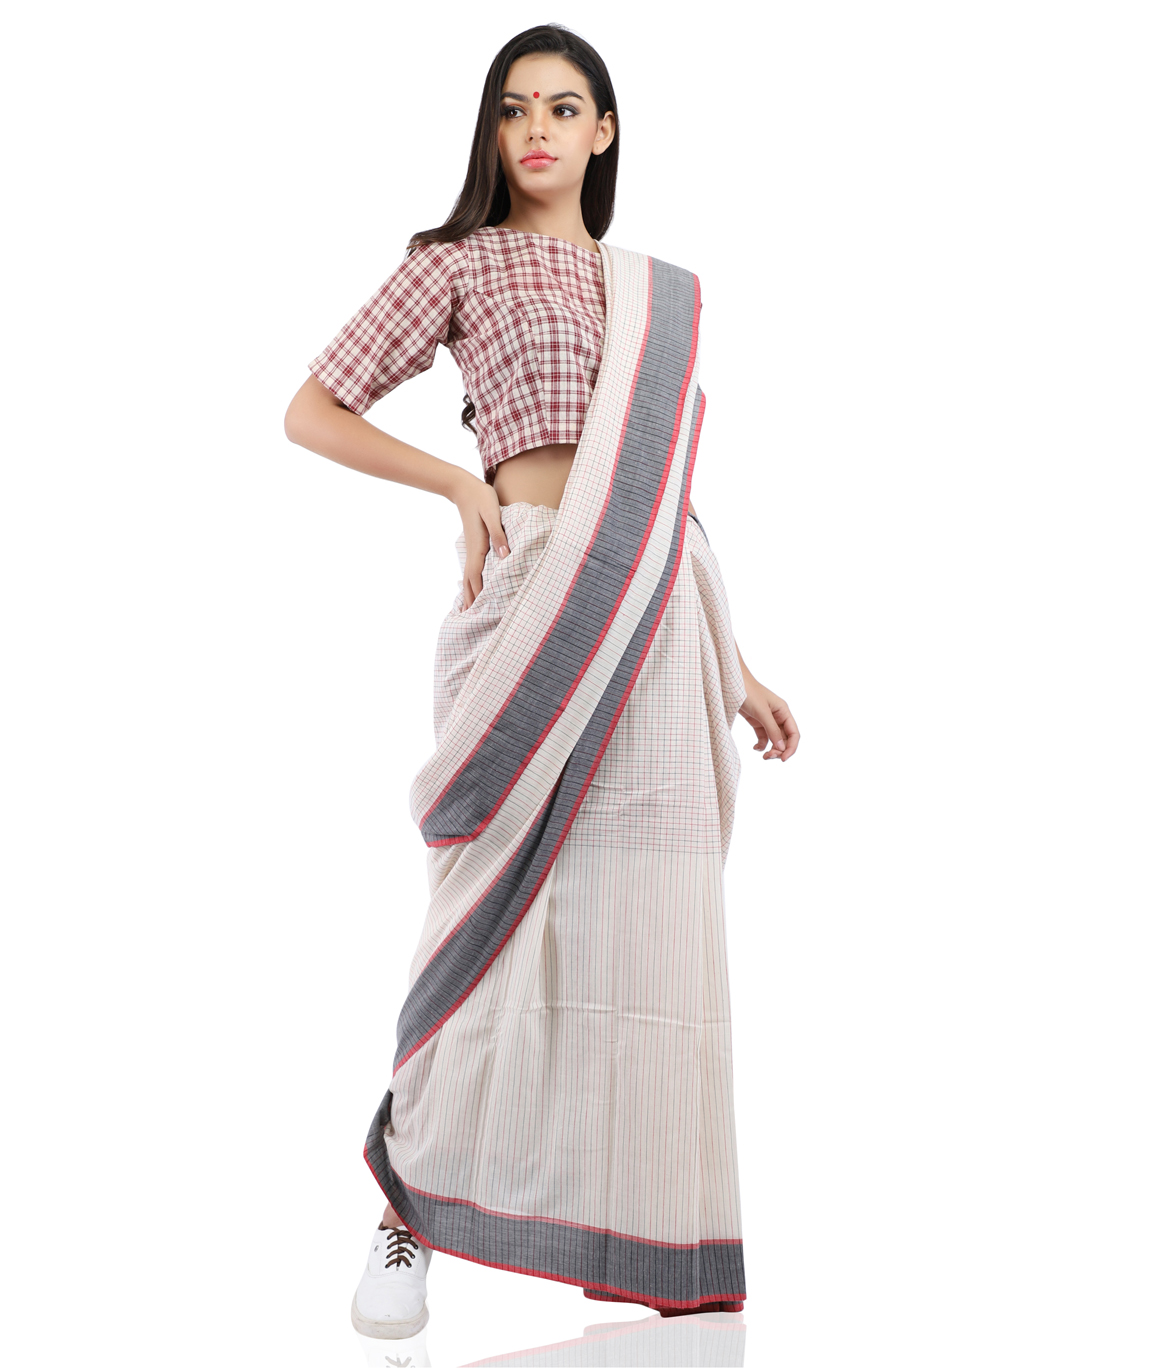 Handloom Pure Cotton Check Saree in White and Red With Blouse Piece